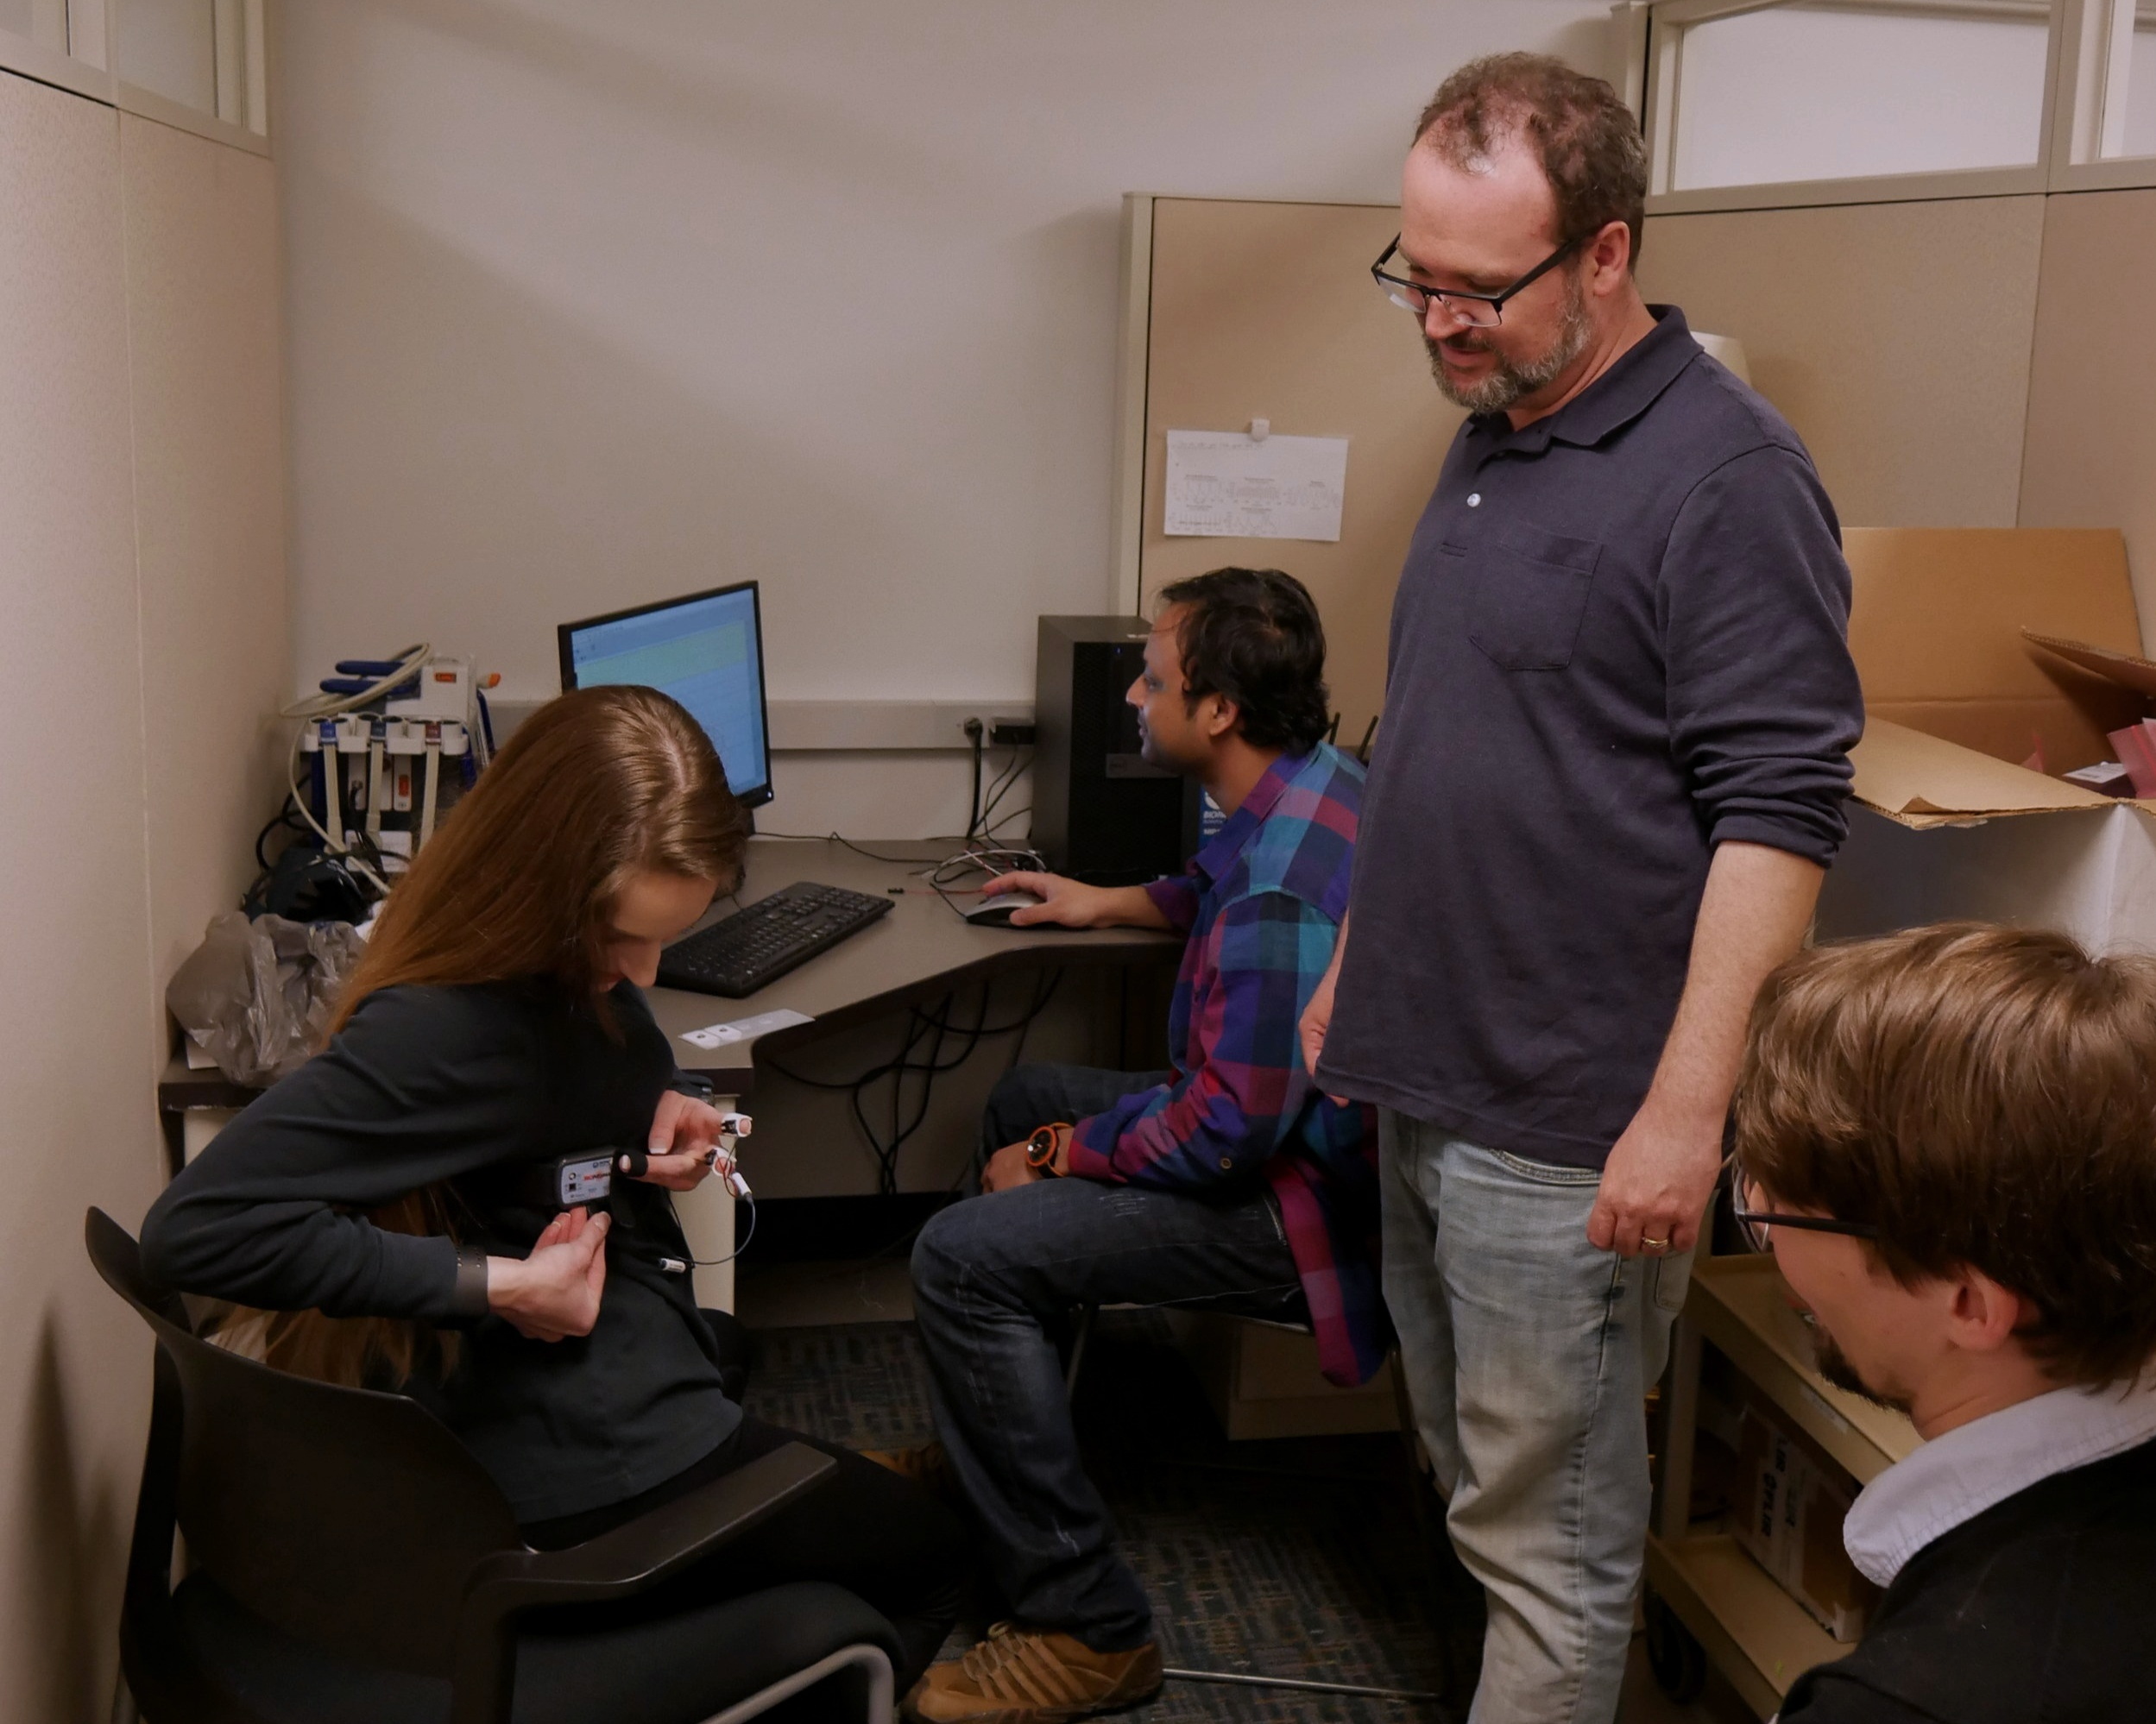 Projects - Interested in participating in a study? Curious about what we're working on in the lab? Click here to find out more about our current projects.